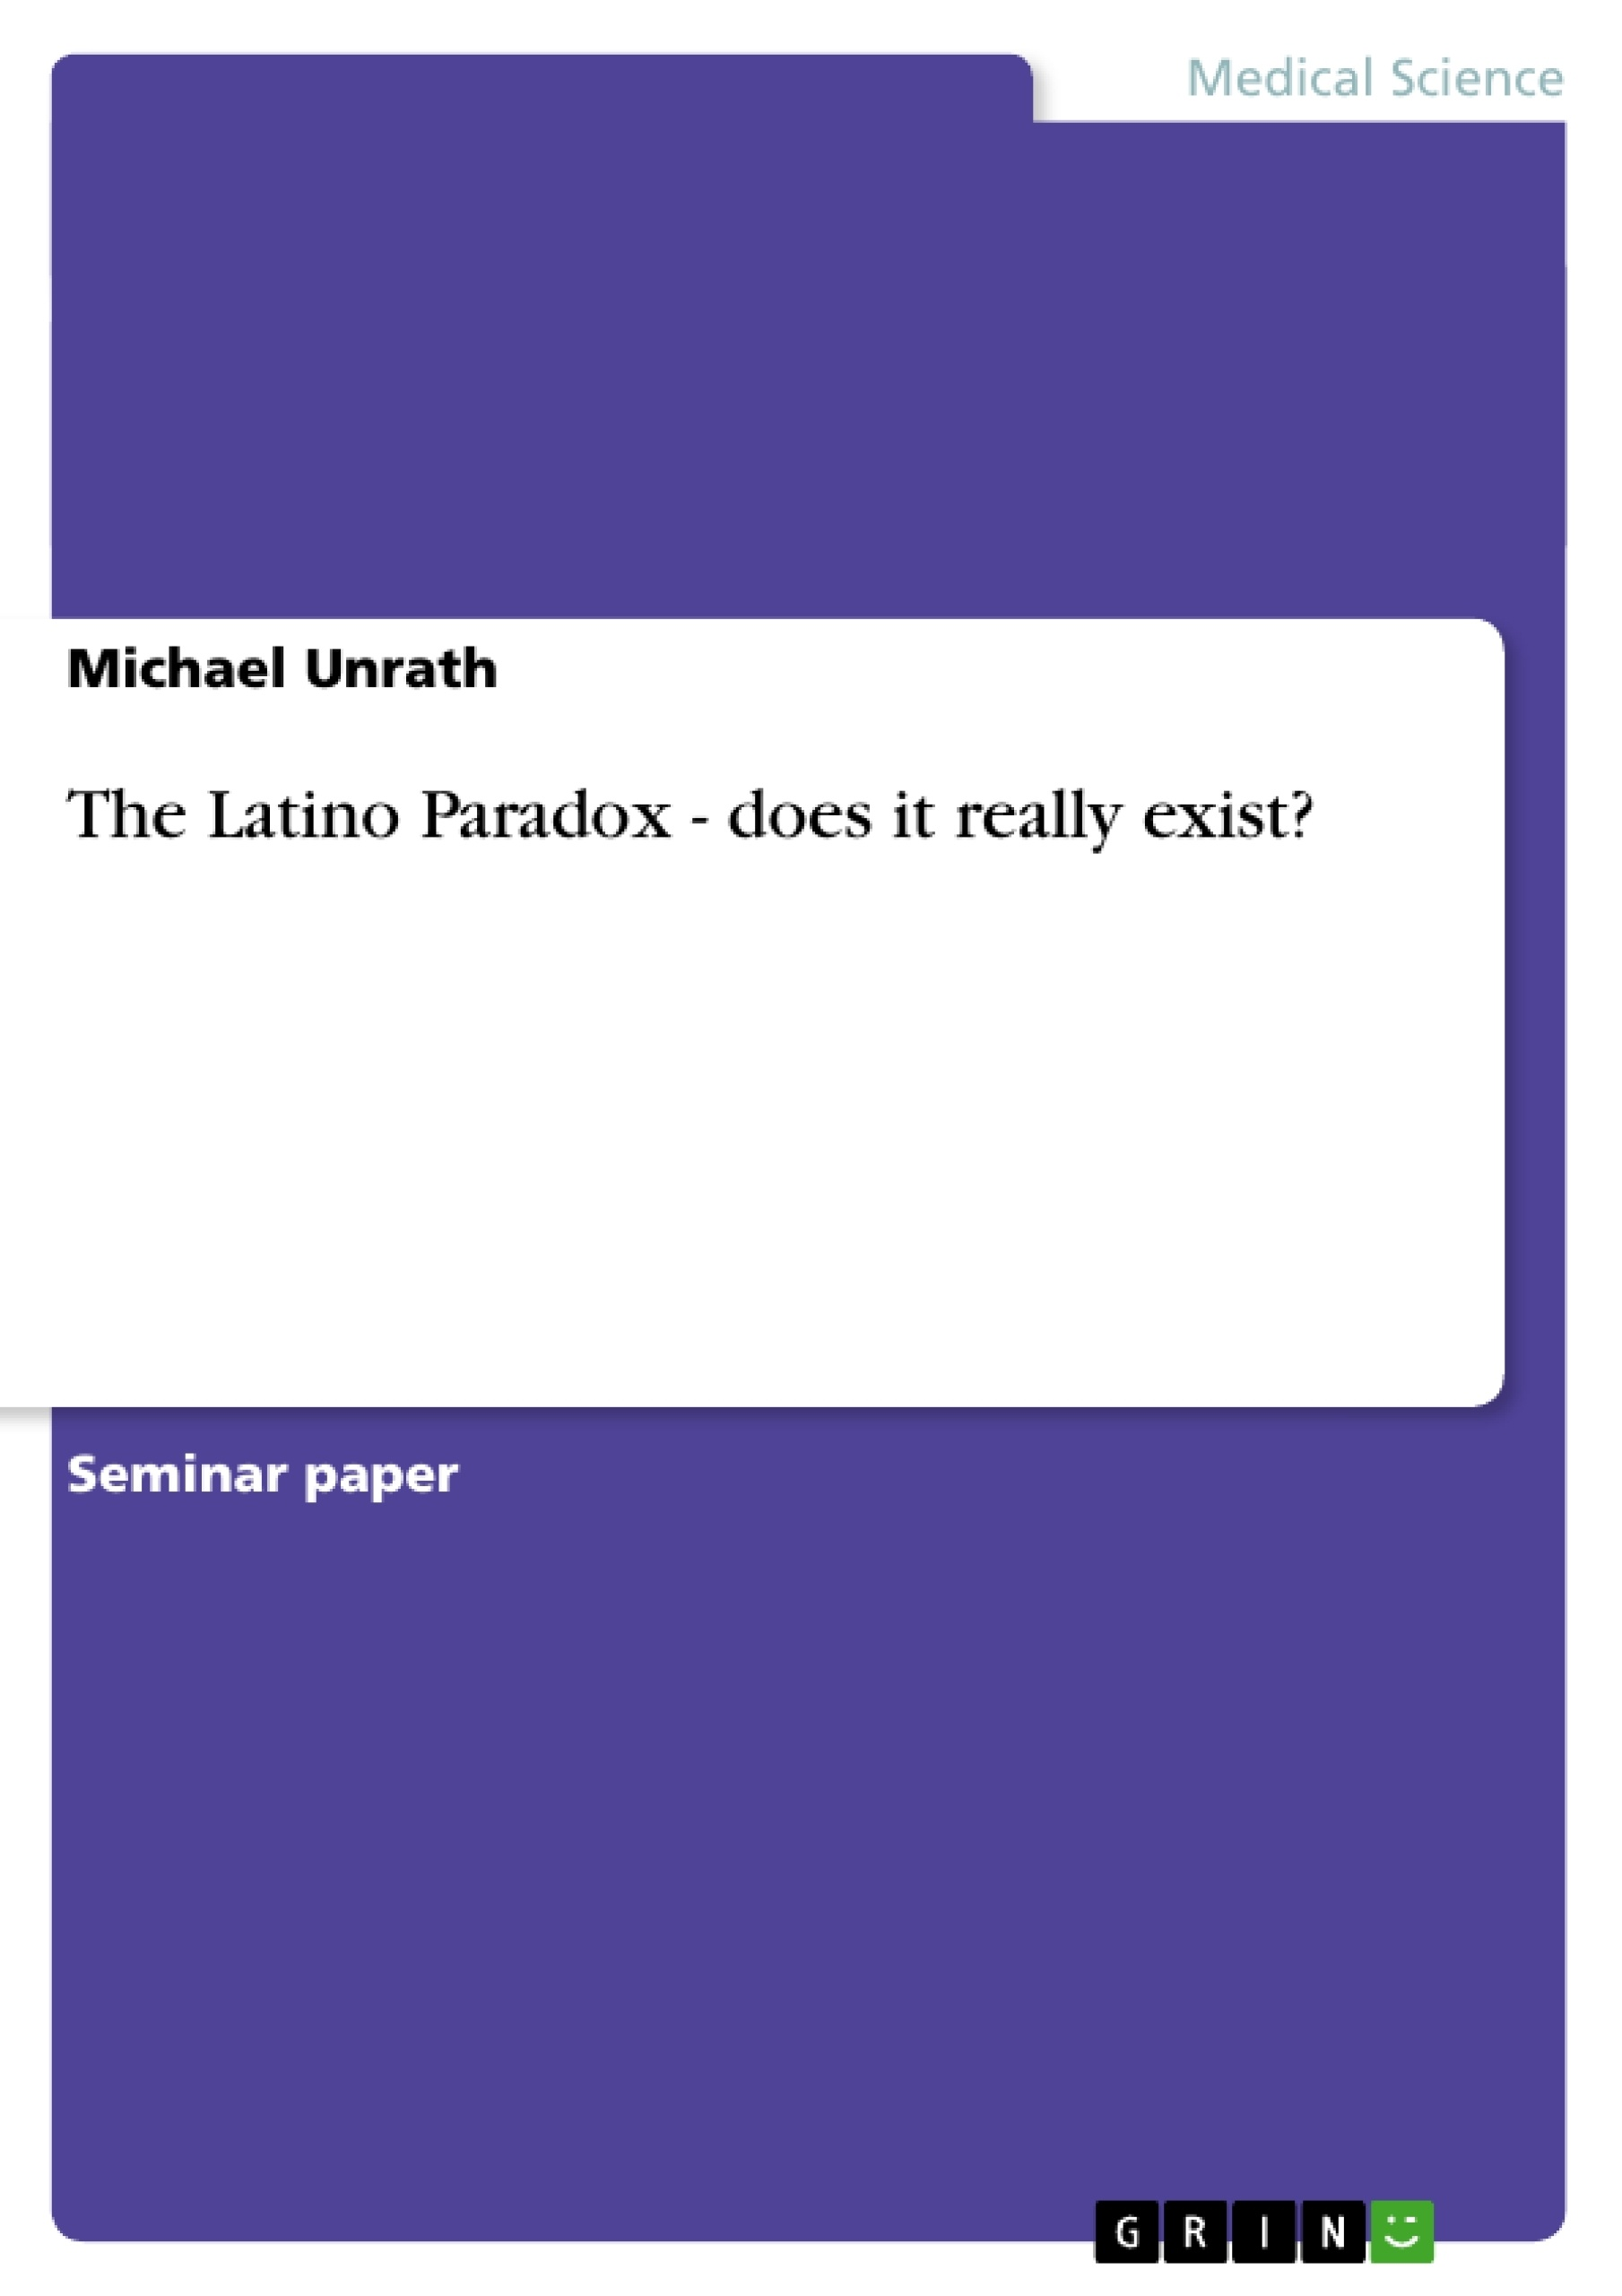 Title: The Latino Paradox - does it really exist?